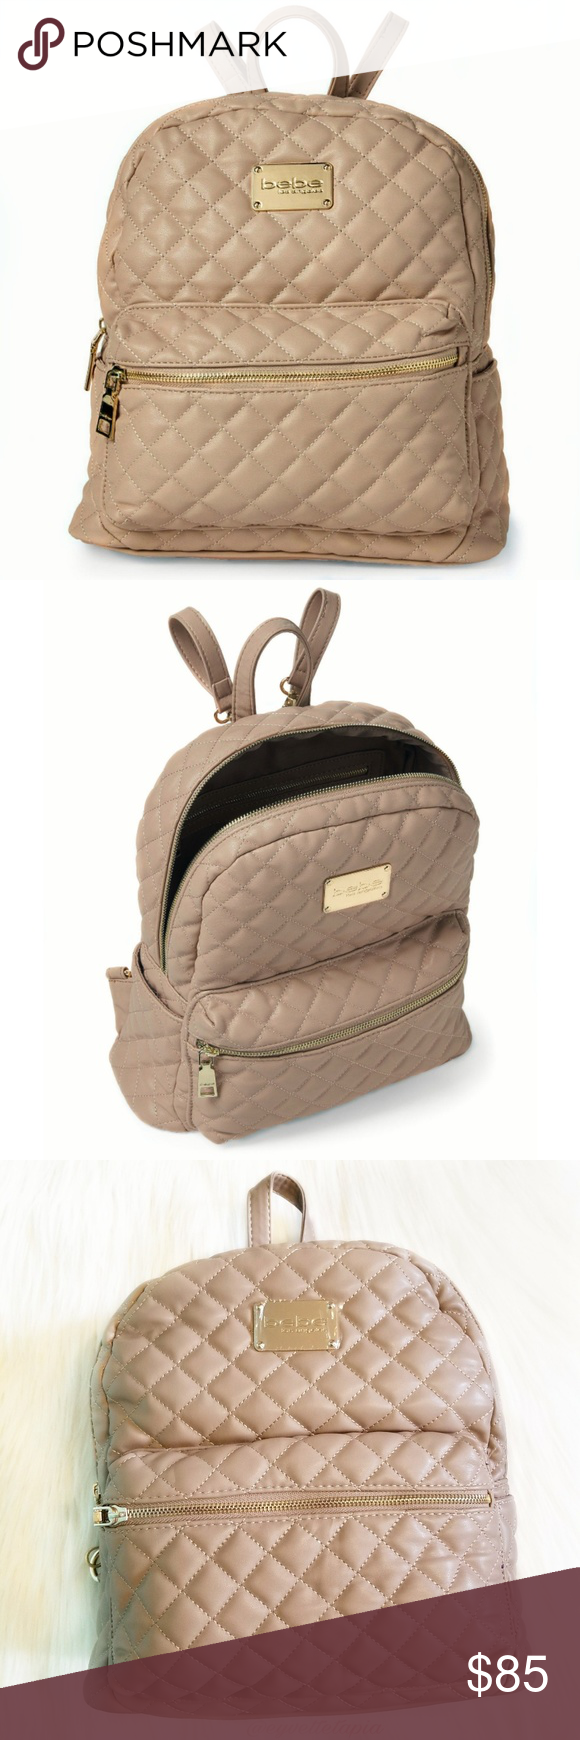 New!! Bebe large quilted maria backpack in taupe New with tags!!  quilted faux-leather  uppergold-toned metal bebe® logo accent front zippered pocket side slip pockets zippered top closure fabric lined interior with zip, slip and cell pockets handle with 3.5